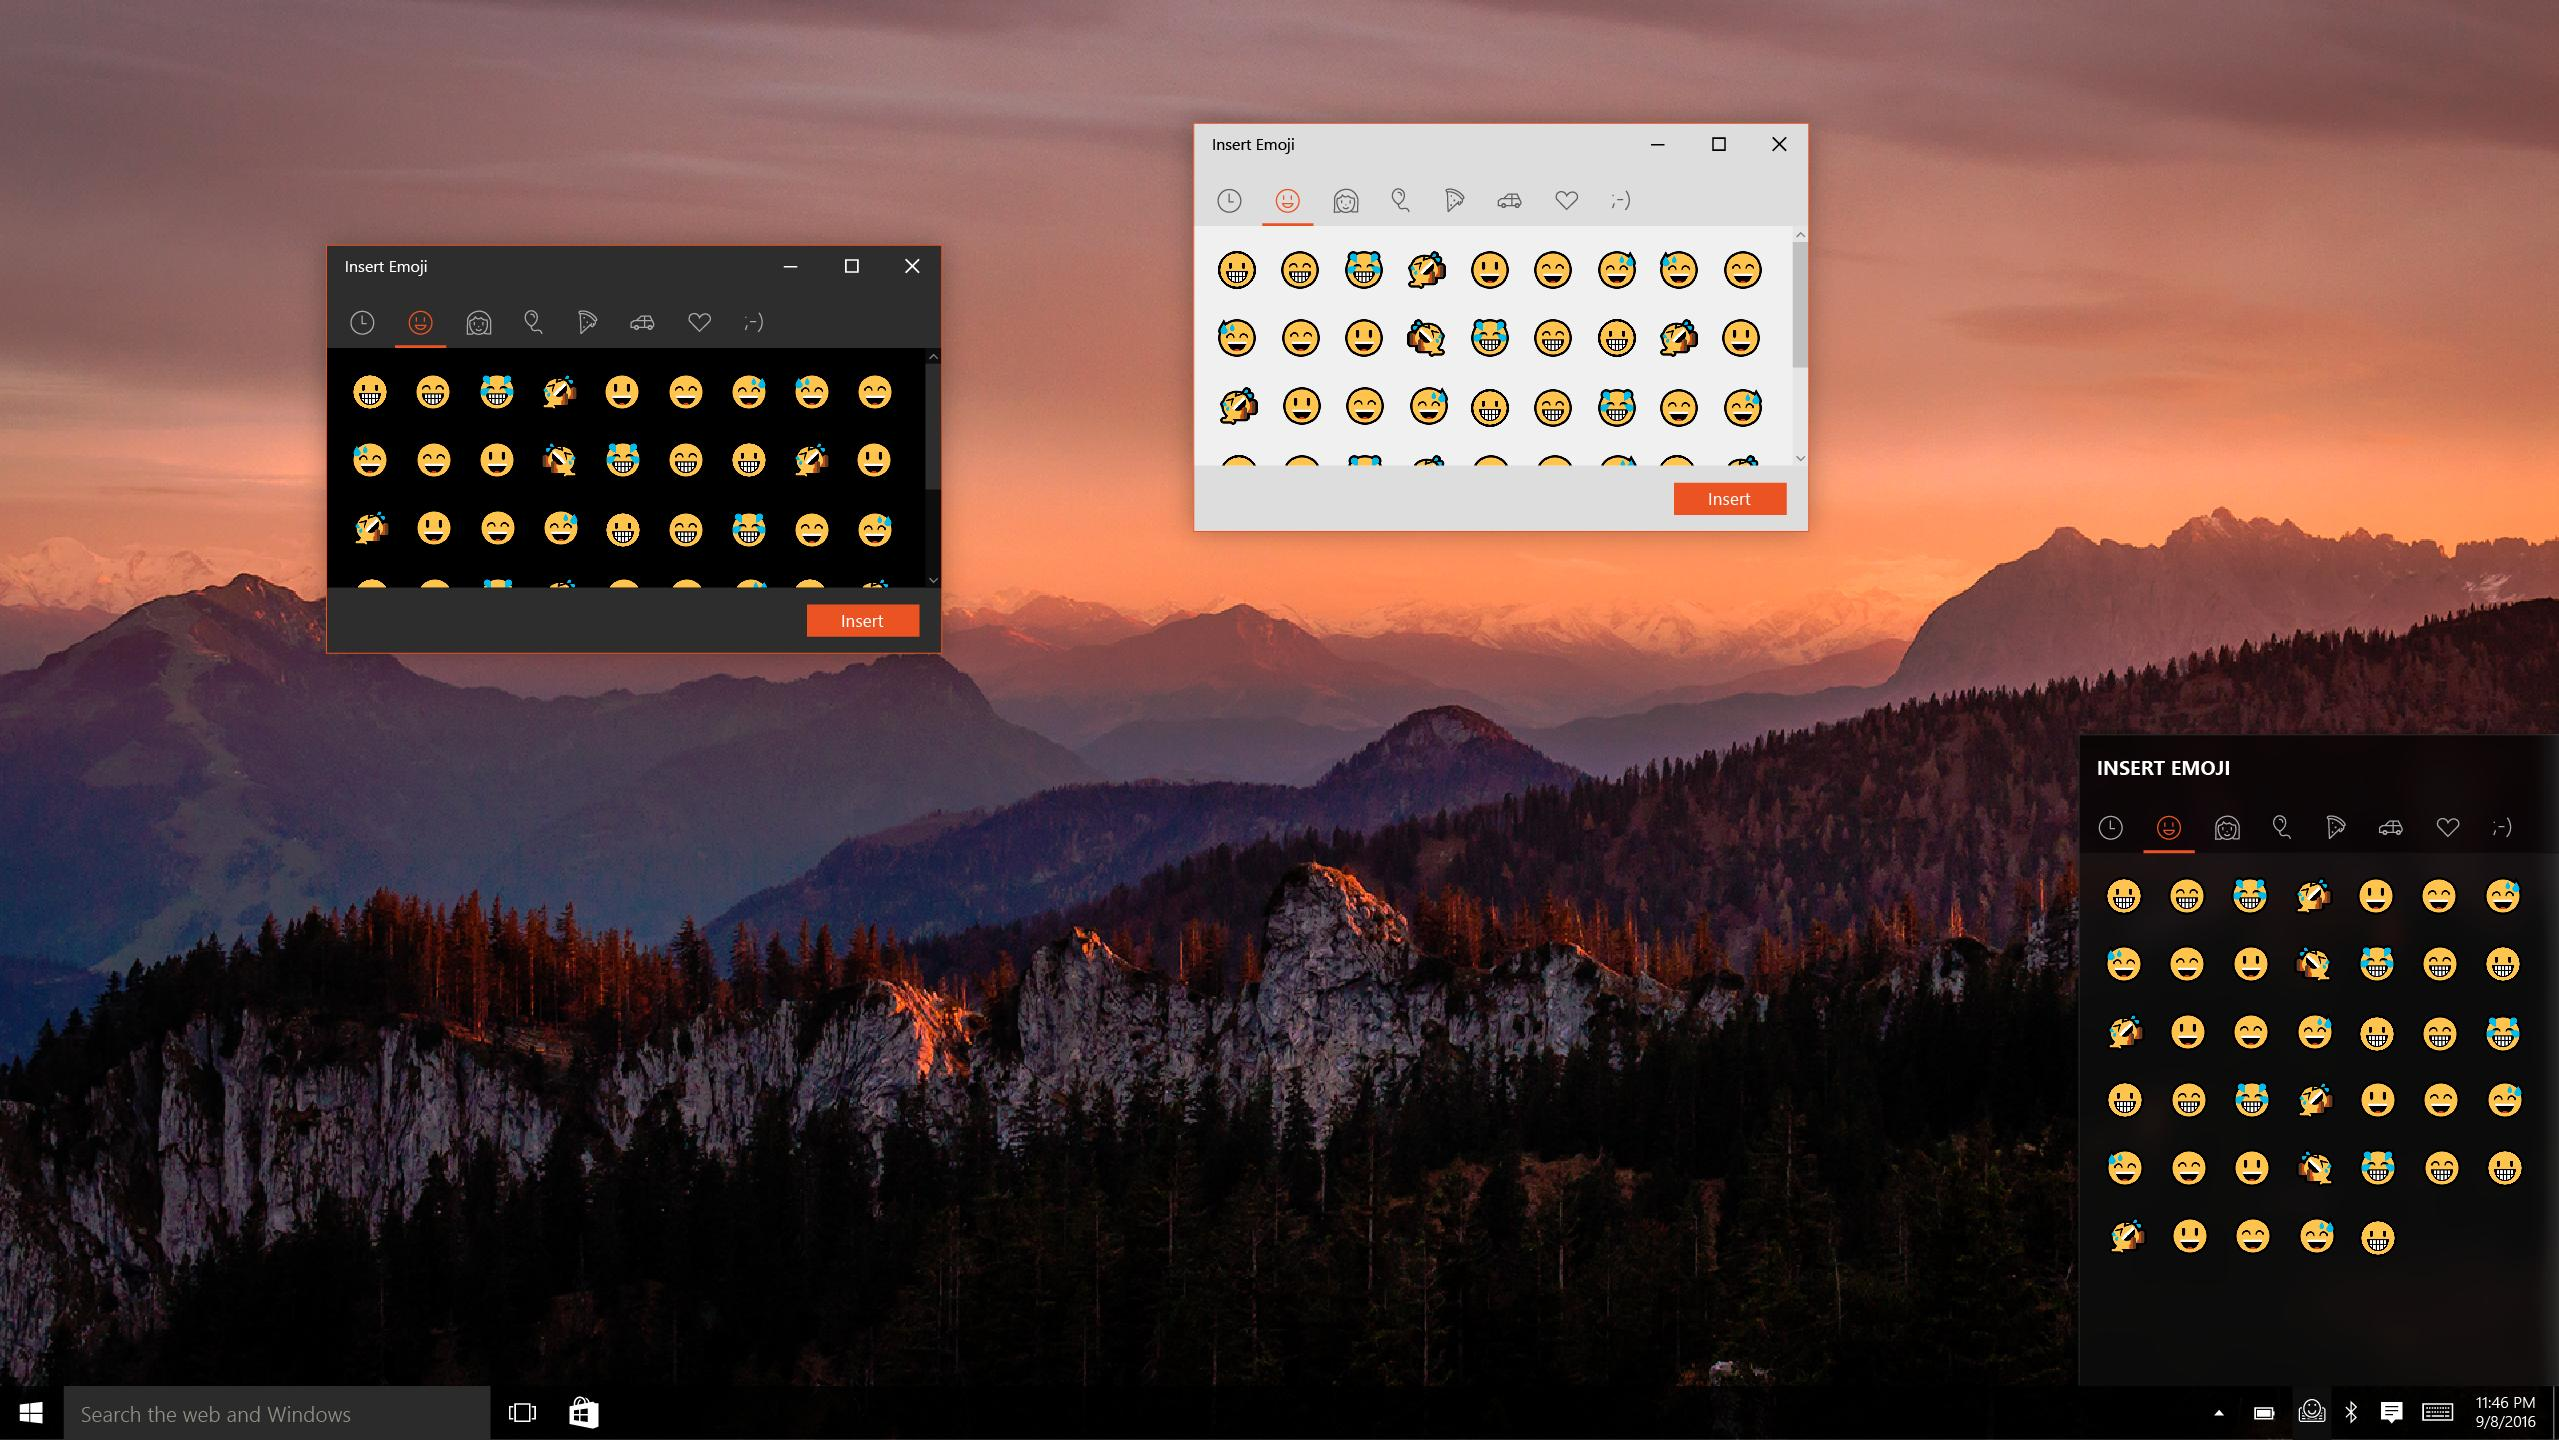 Here's How Windows 10 Emoji Could Work Without the Touch Keyboard